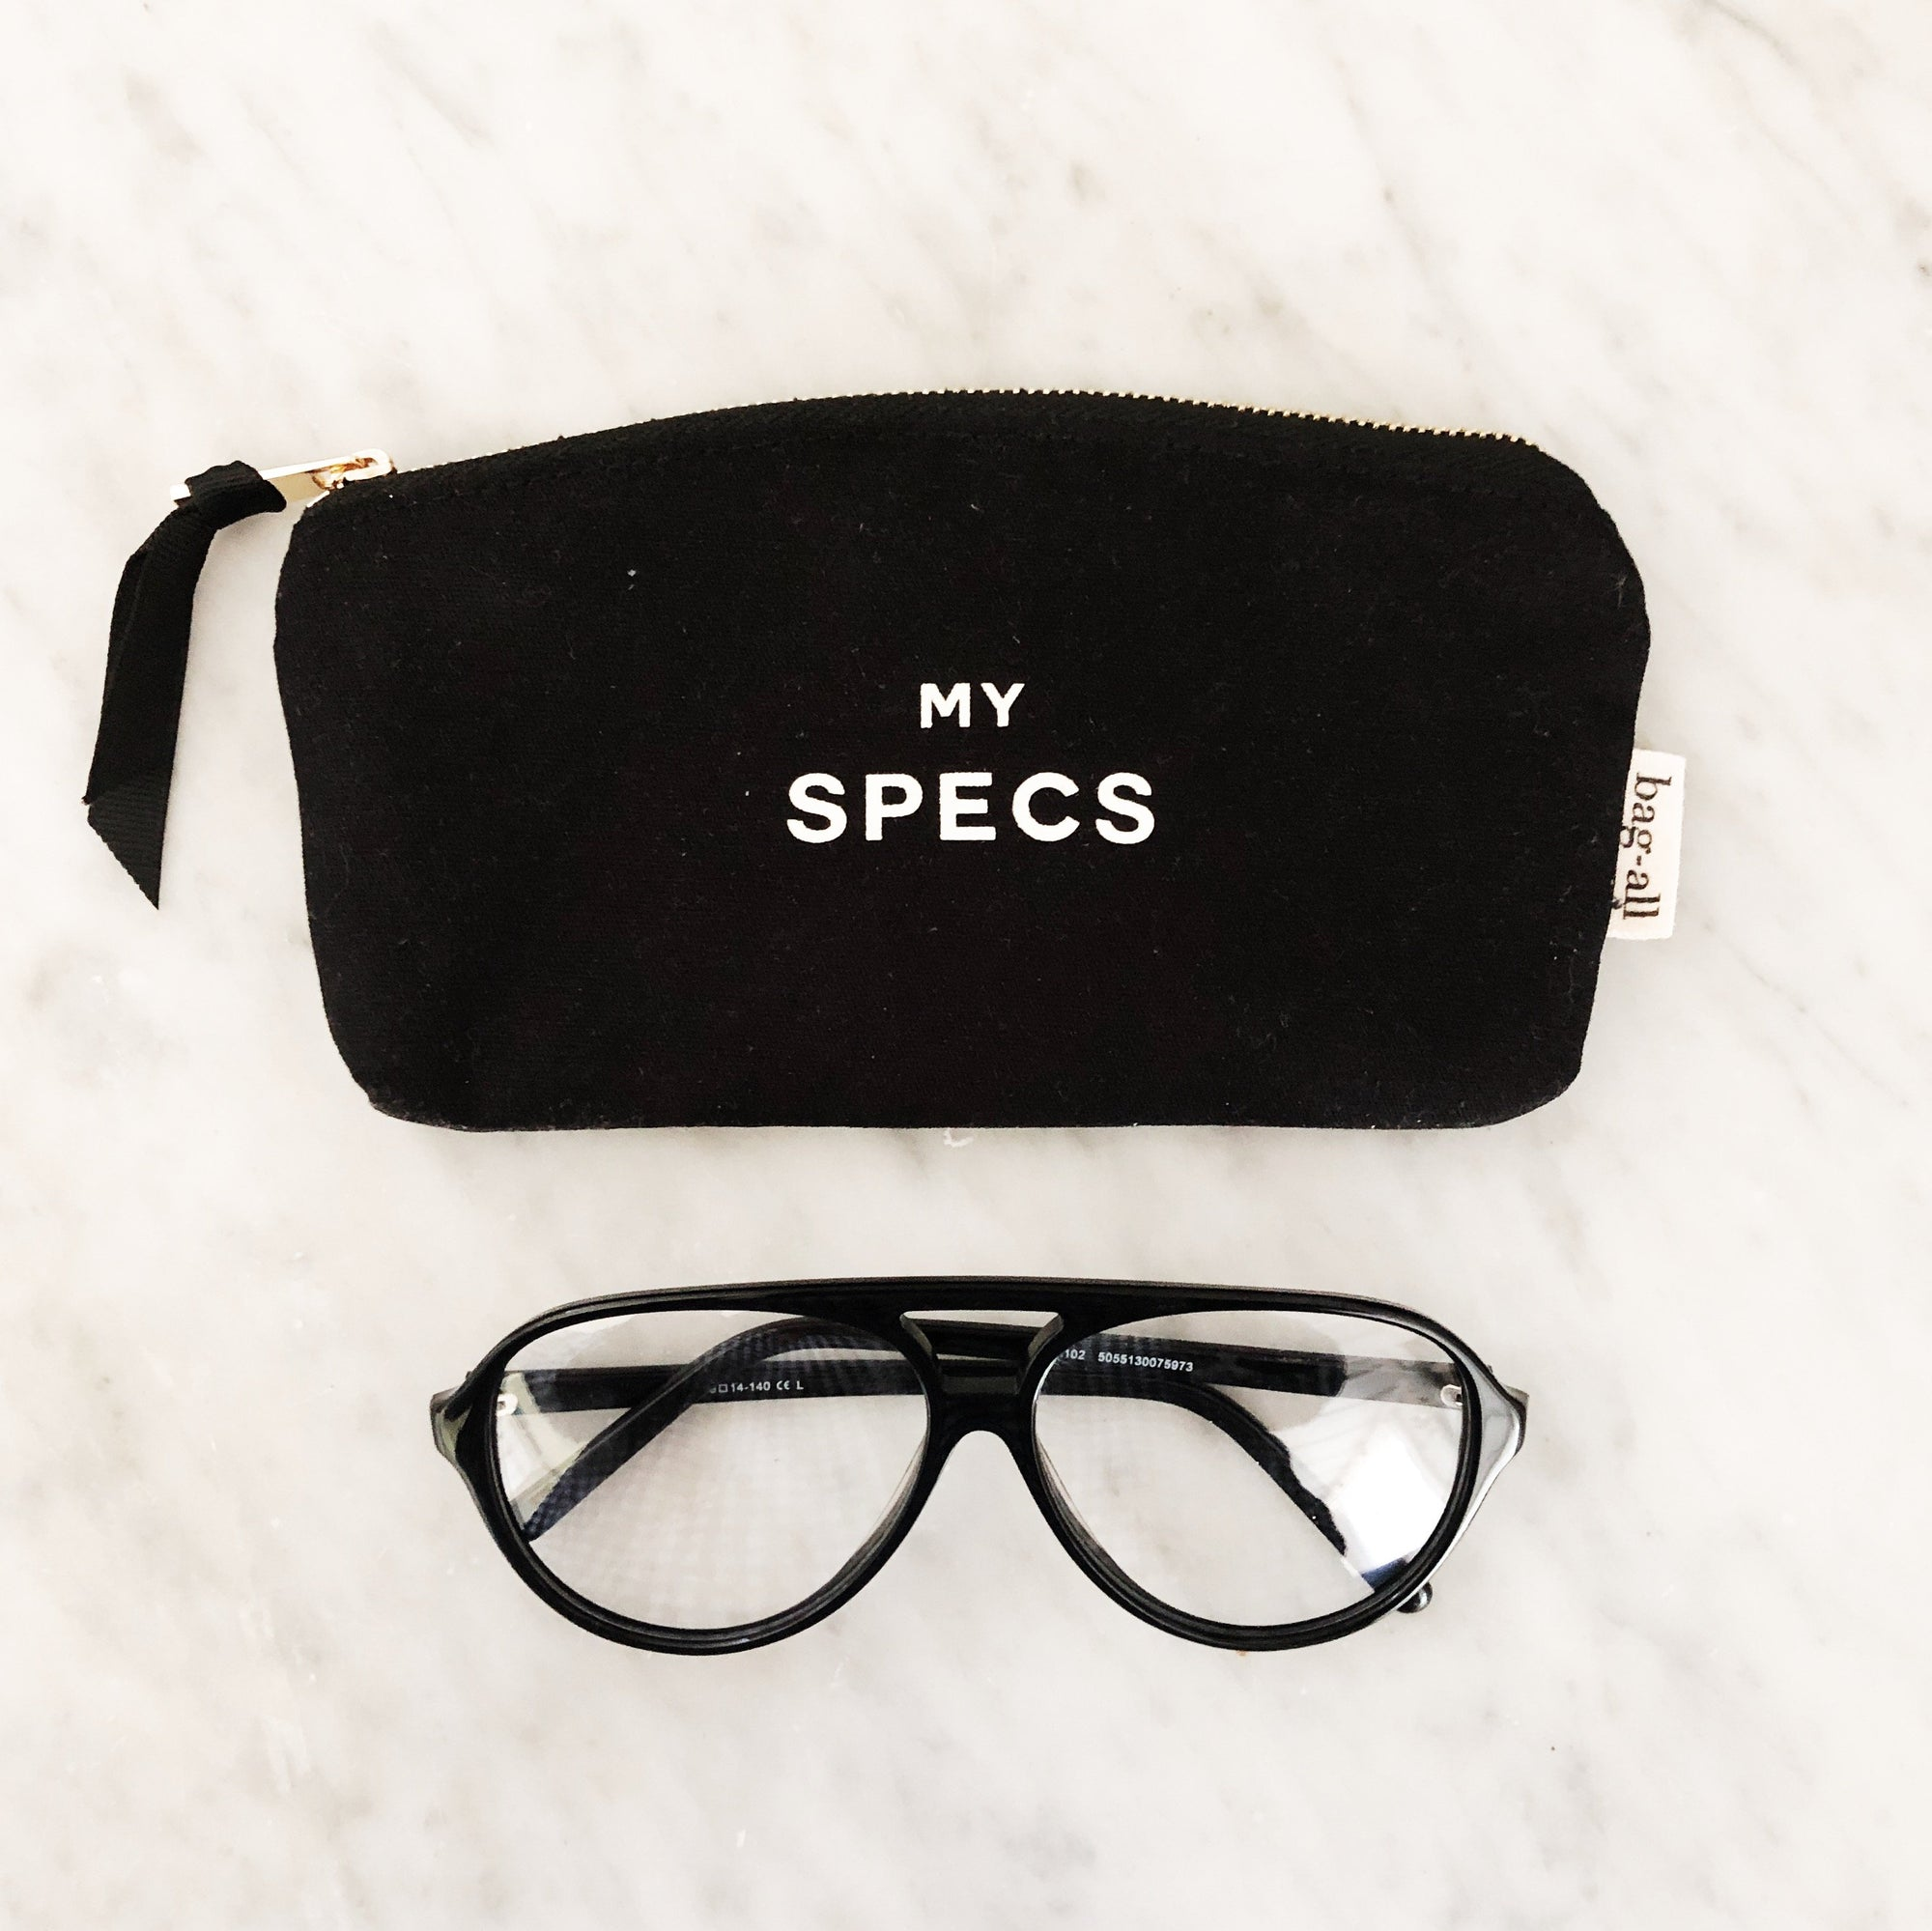 Specs Black Glasses Case - Bag-all Paris